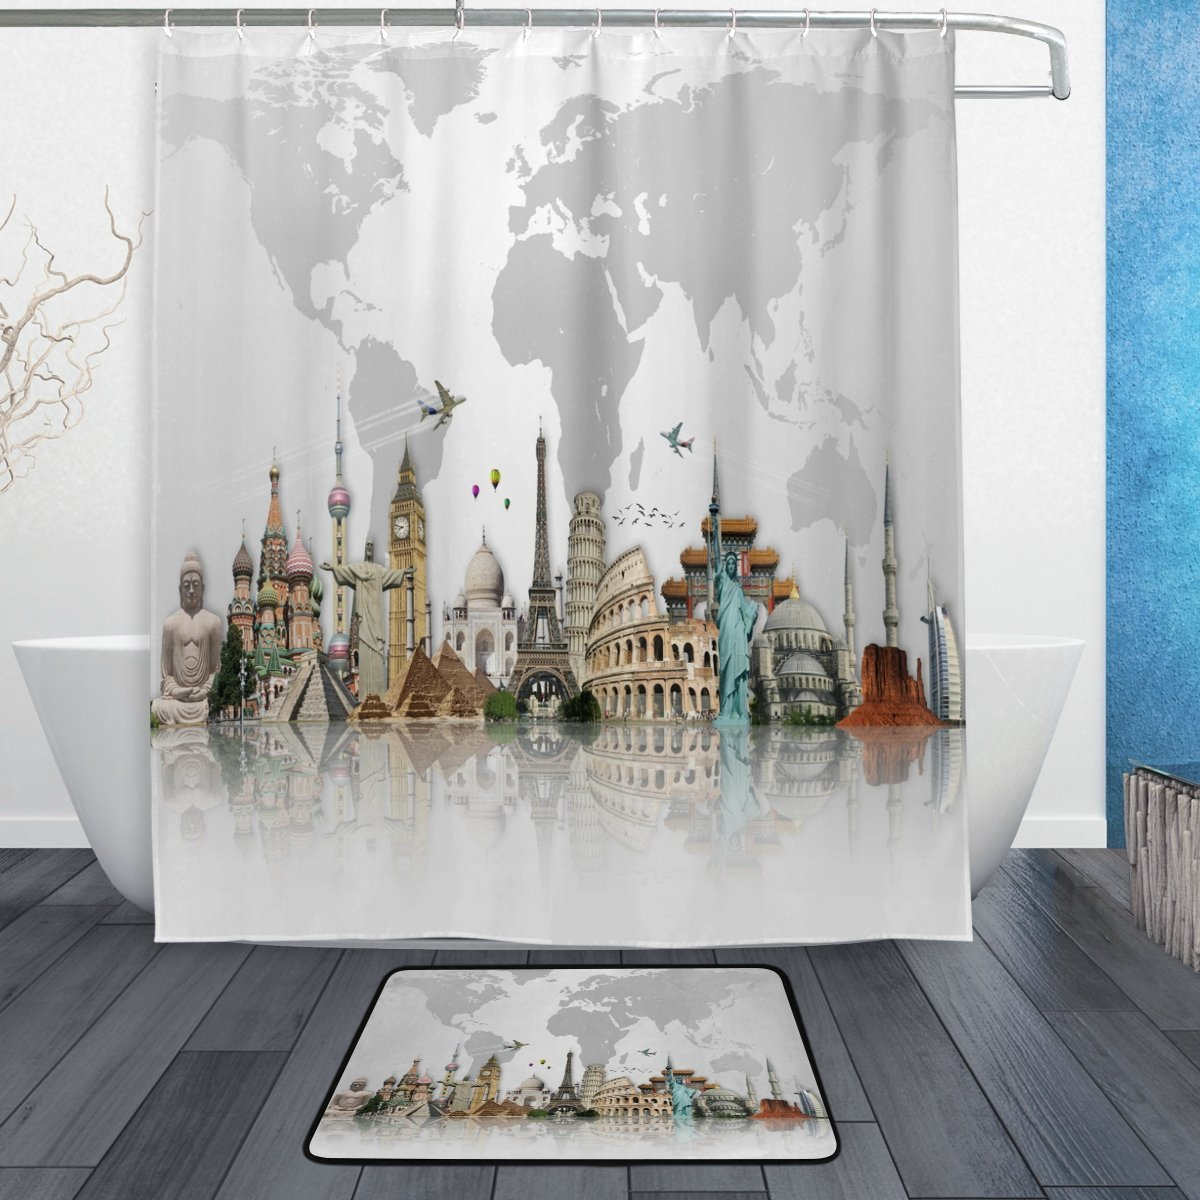 travel around the world famous scene waterproof polyester fabric shower curtain with hooks doormat bath bathroom home decor grey